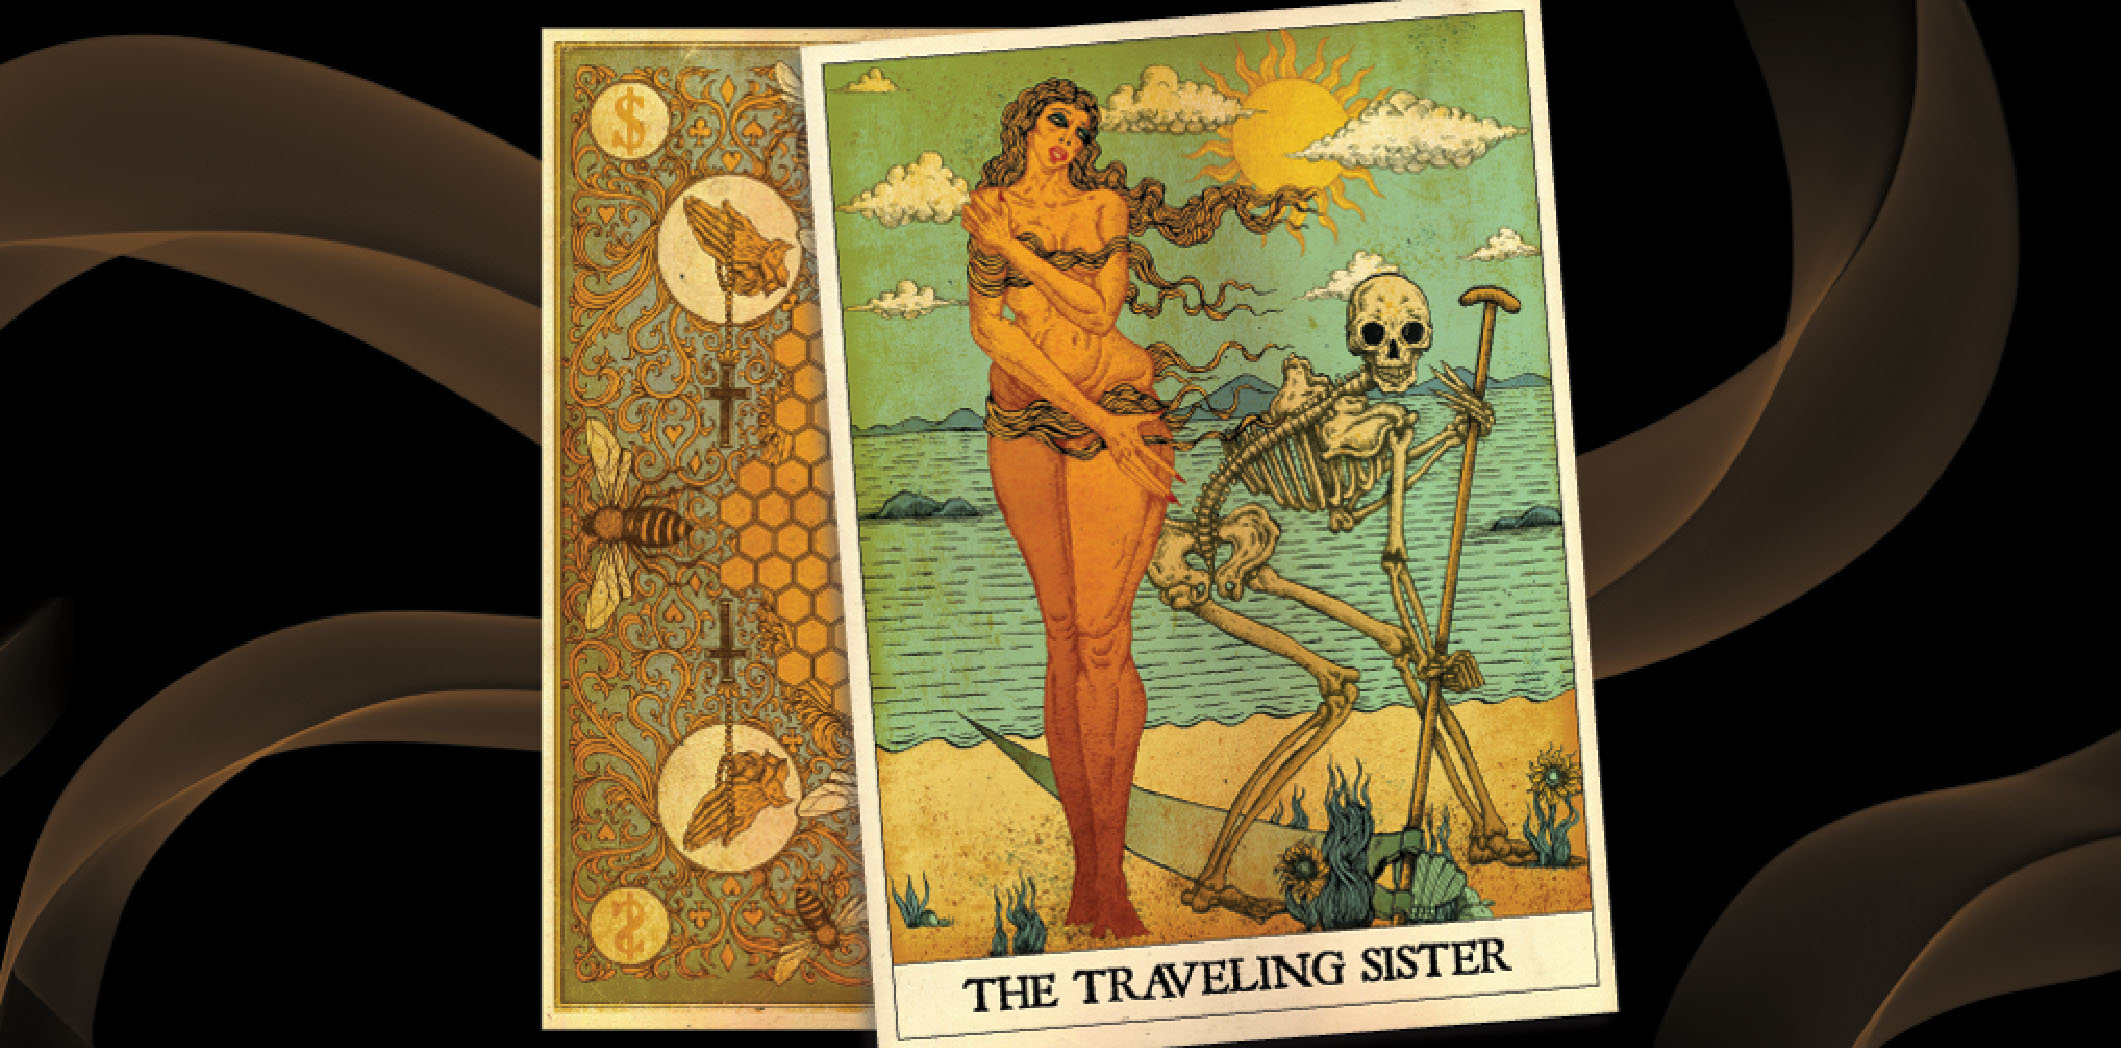 The Traveling Sister